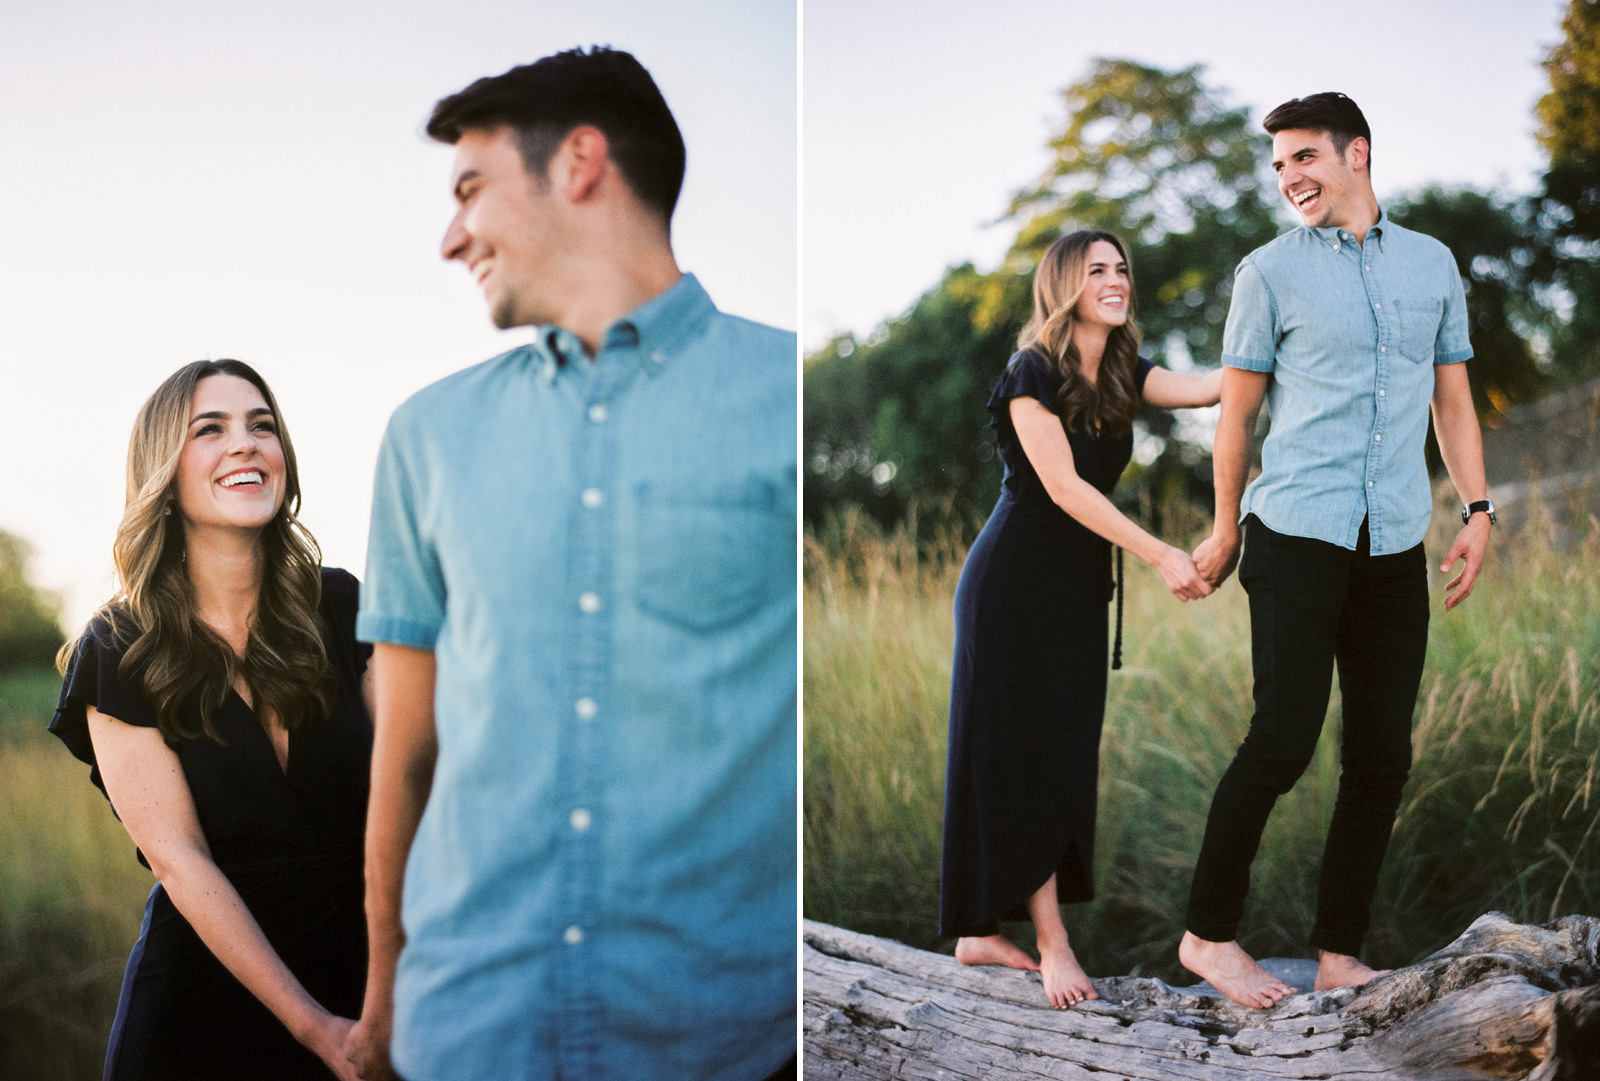 061-summery-engagement-session-with-a-goldendoodle-at-discovery-park-on-film.jpg